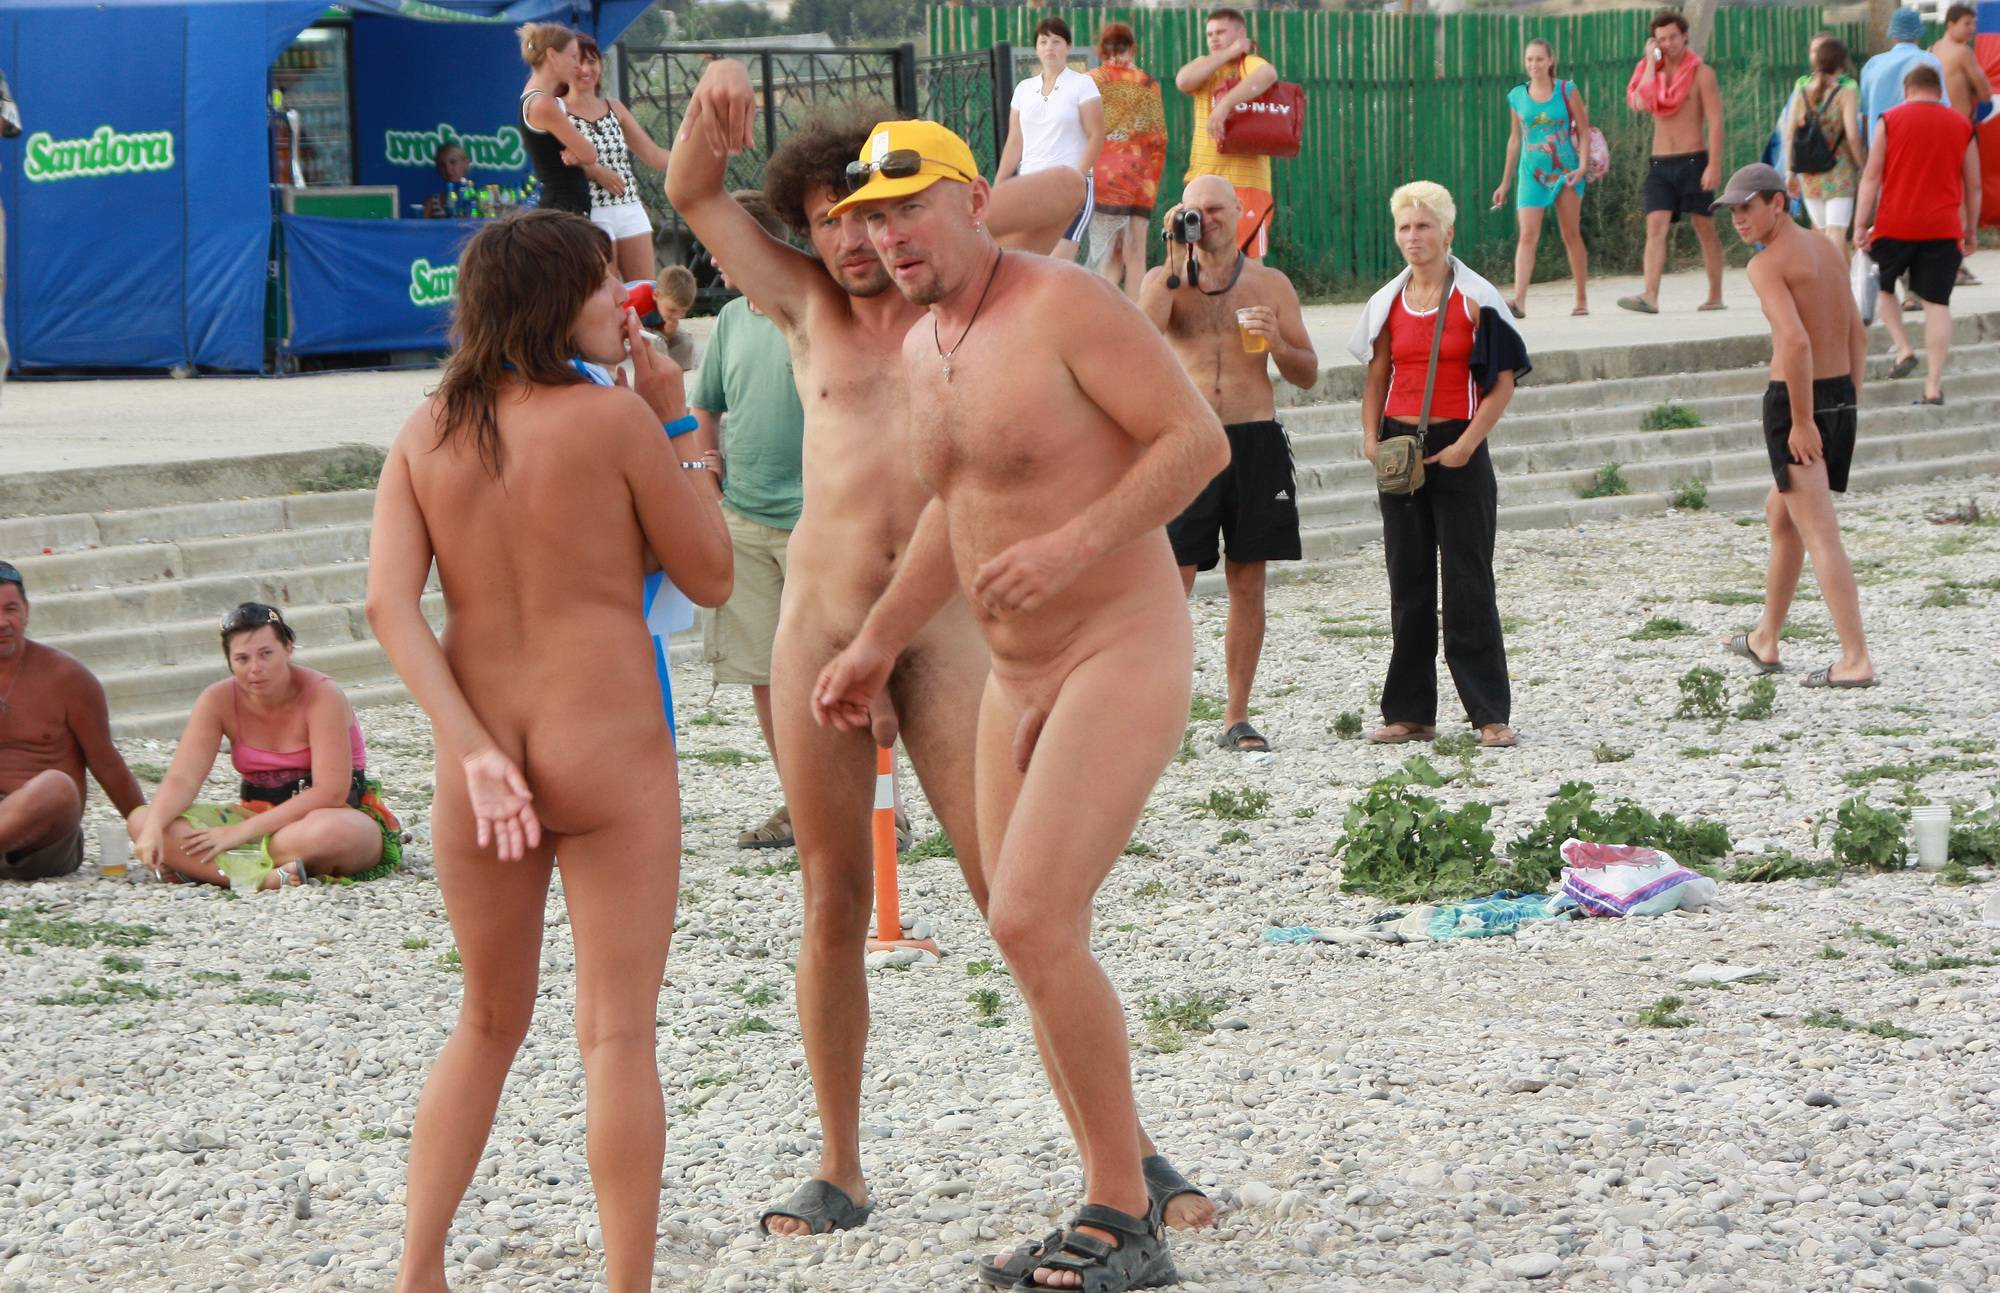 Nudist Photos Neptune Beach Cleanup - 2